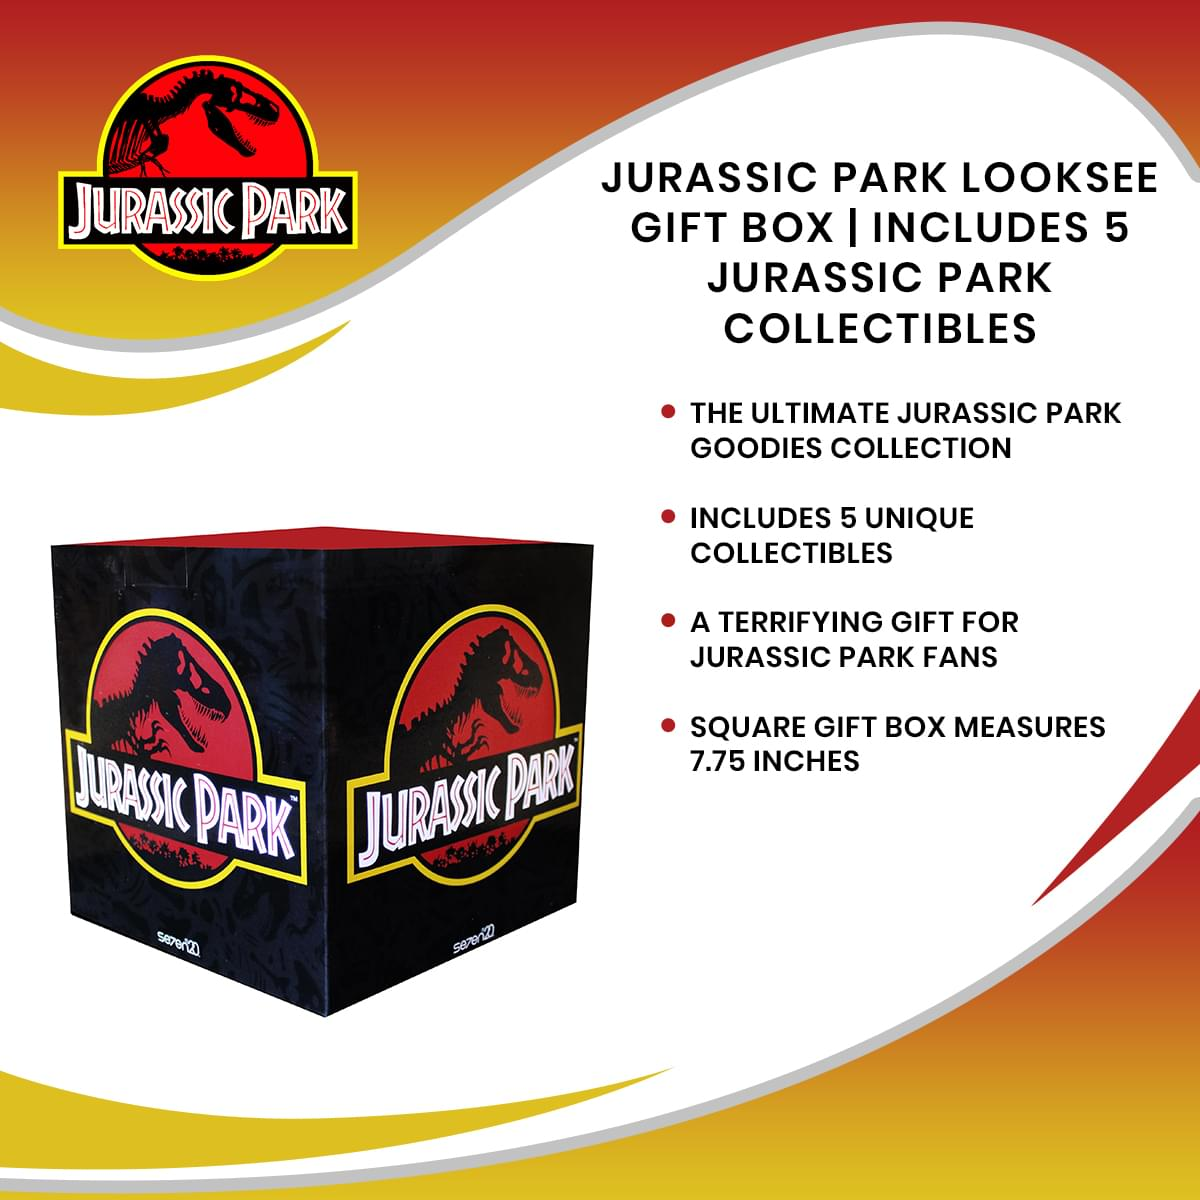 Jurassic Park Looksee Gift Box | Includes 5 Jurassic Park Collectibles